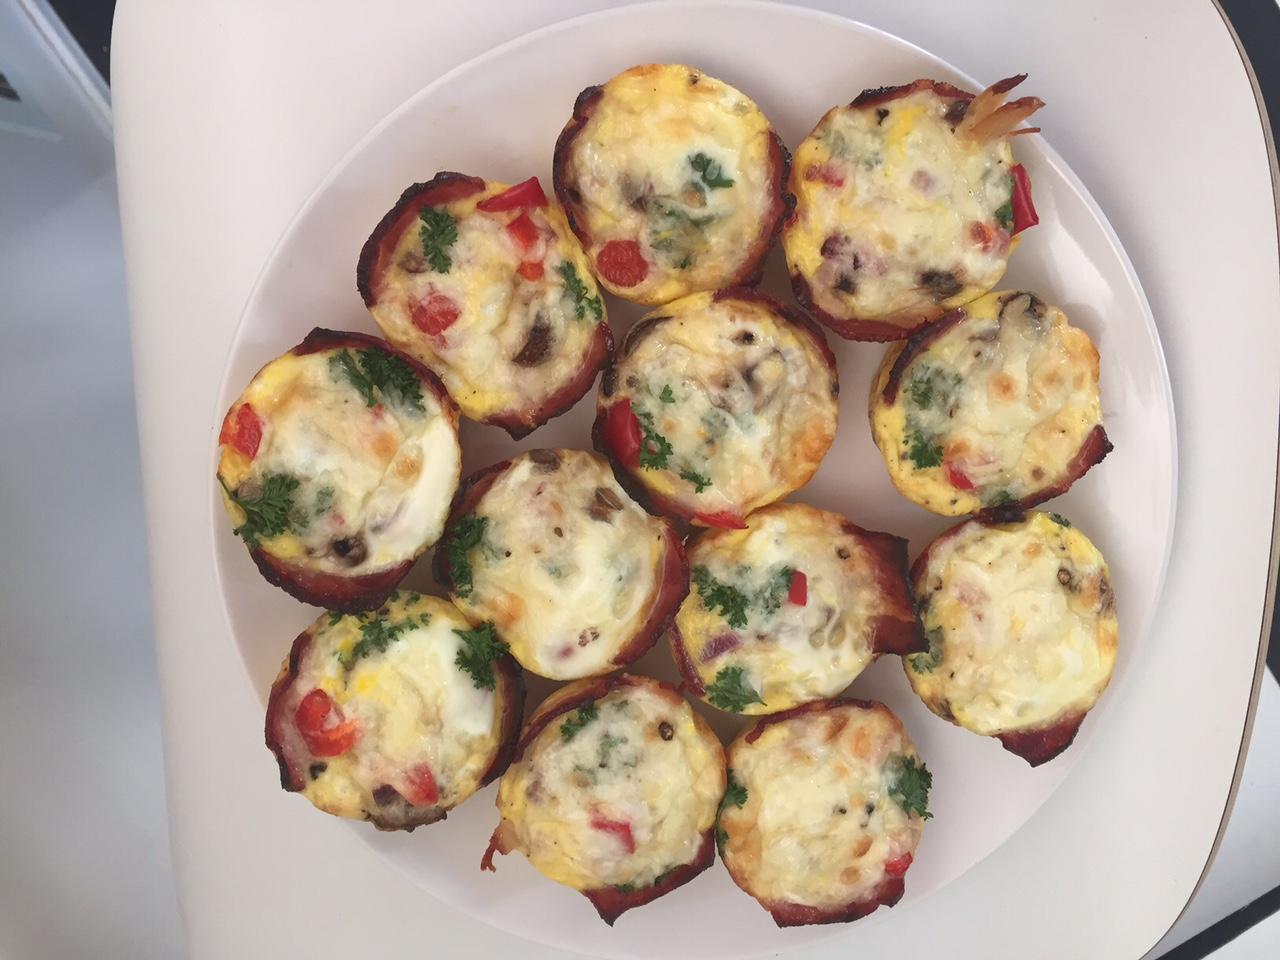 Egg muffins with turkey bacon, tomato and spinach